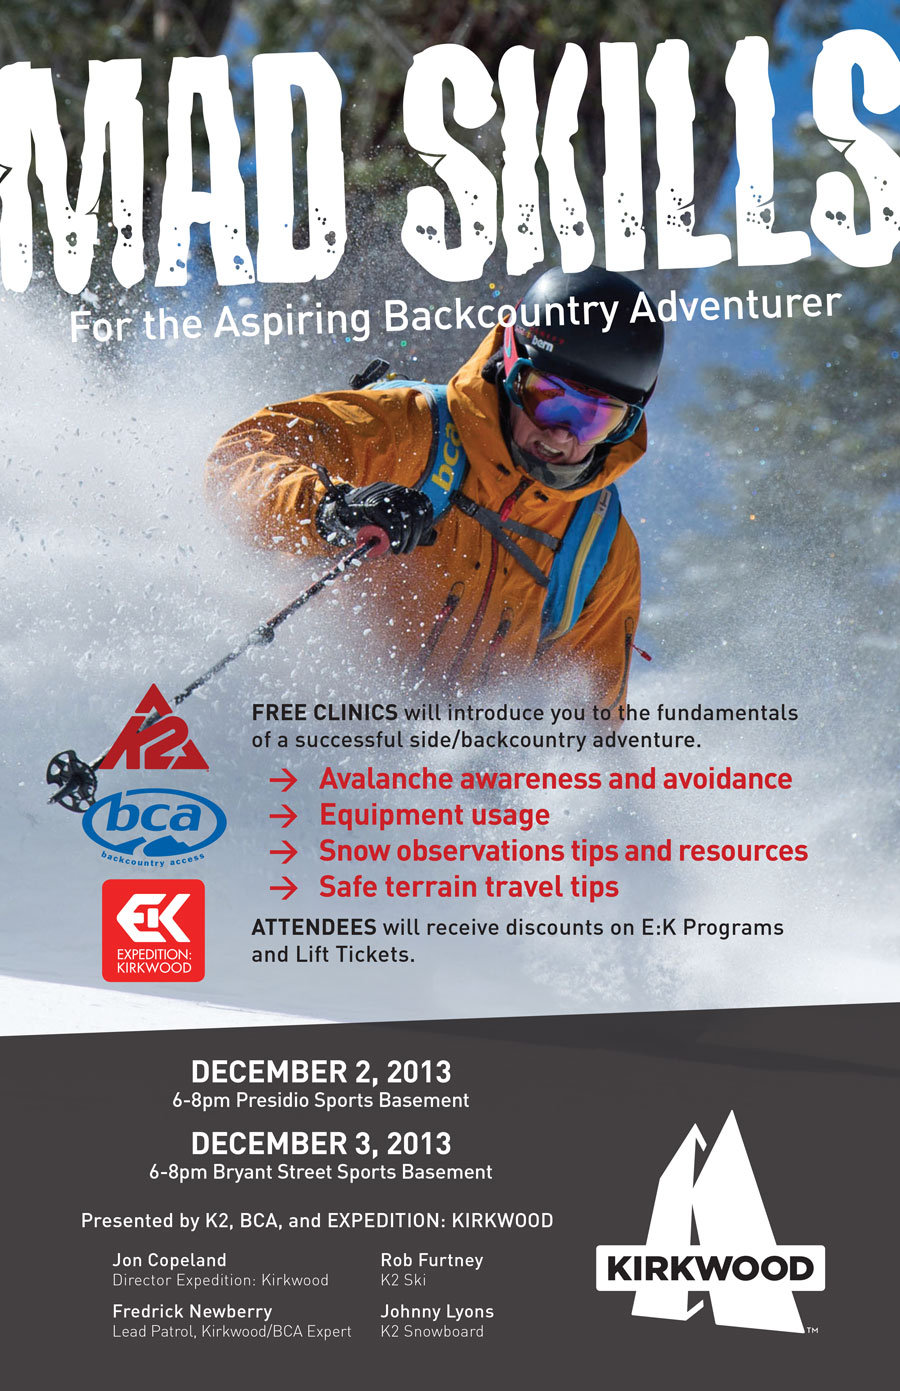 Learn some of the backcountry basics at Sports Basement in San Francisco on Dec 2nd and 3rd.